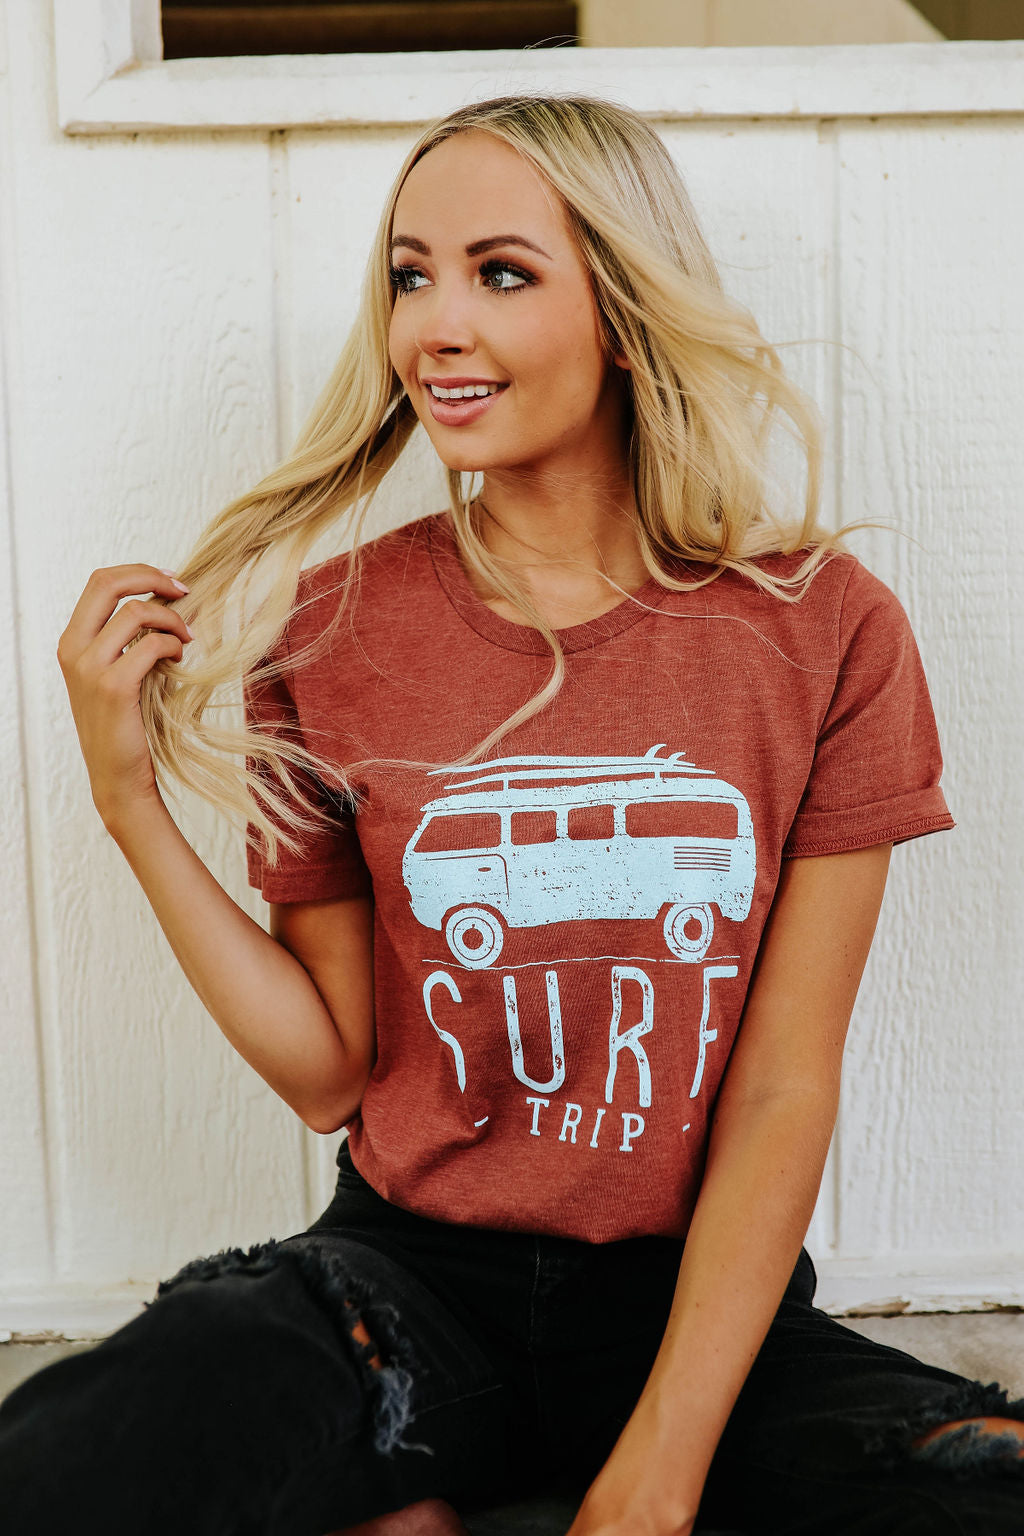 THE SURF TRIP GRAPHIC TEE IN HEATHER CLAY